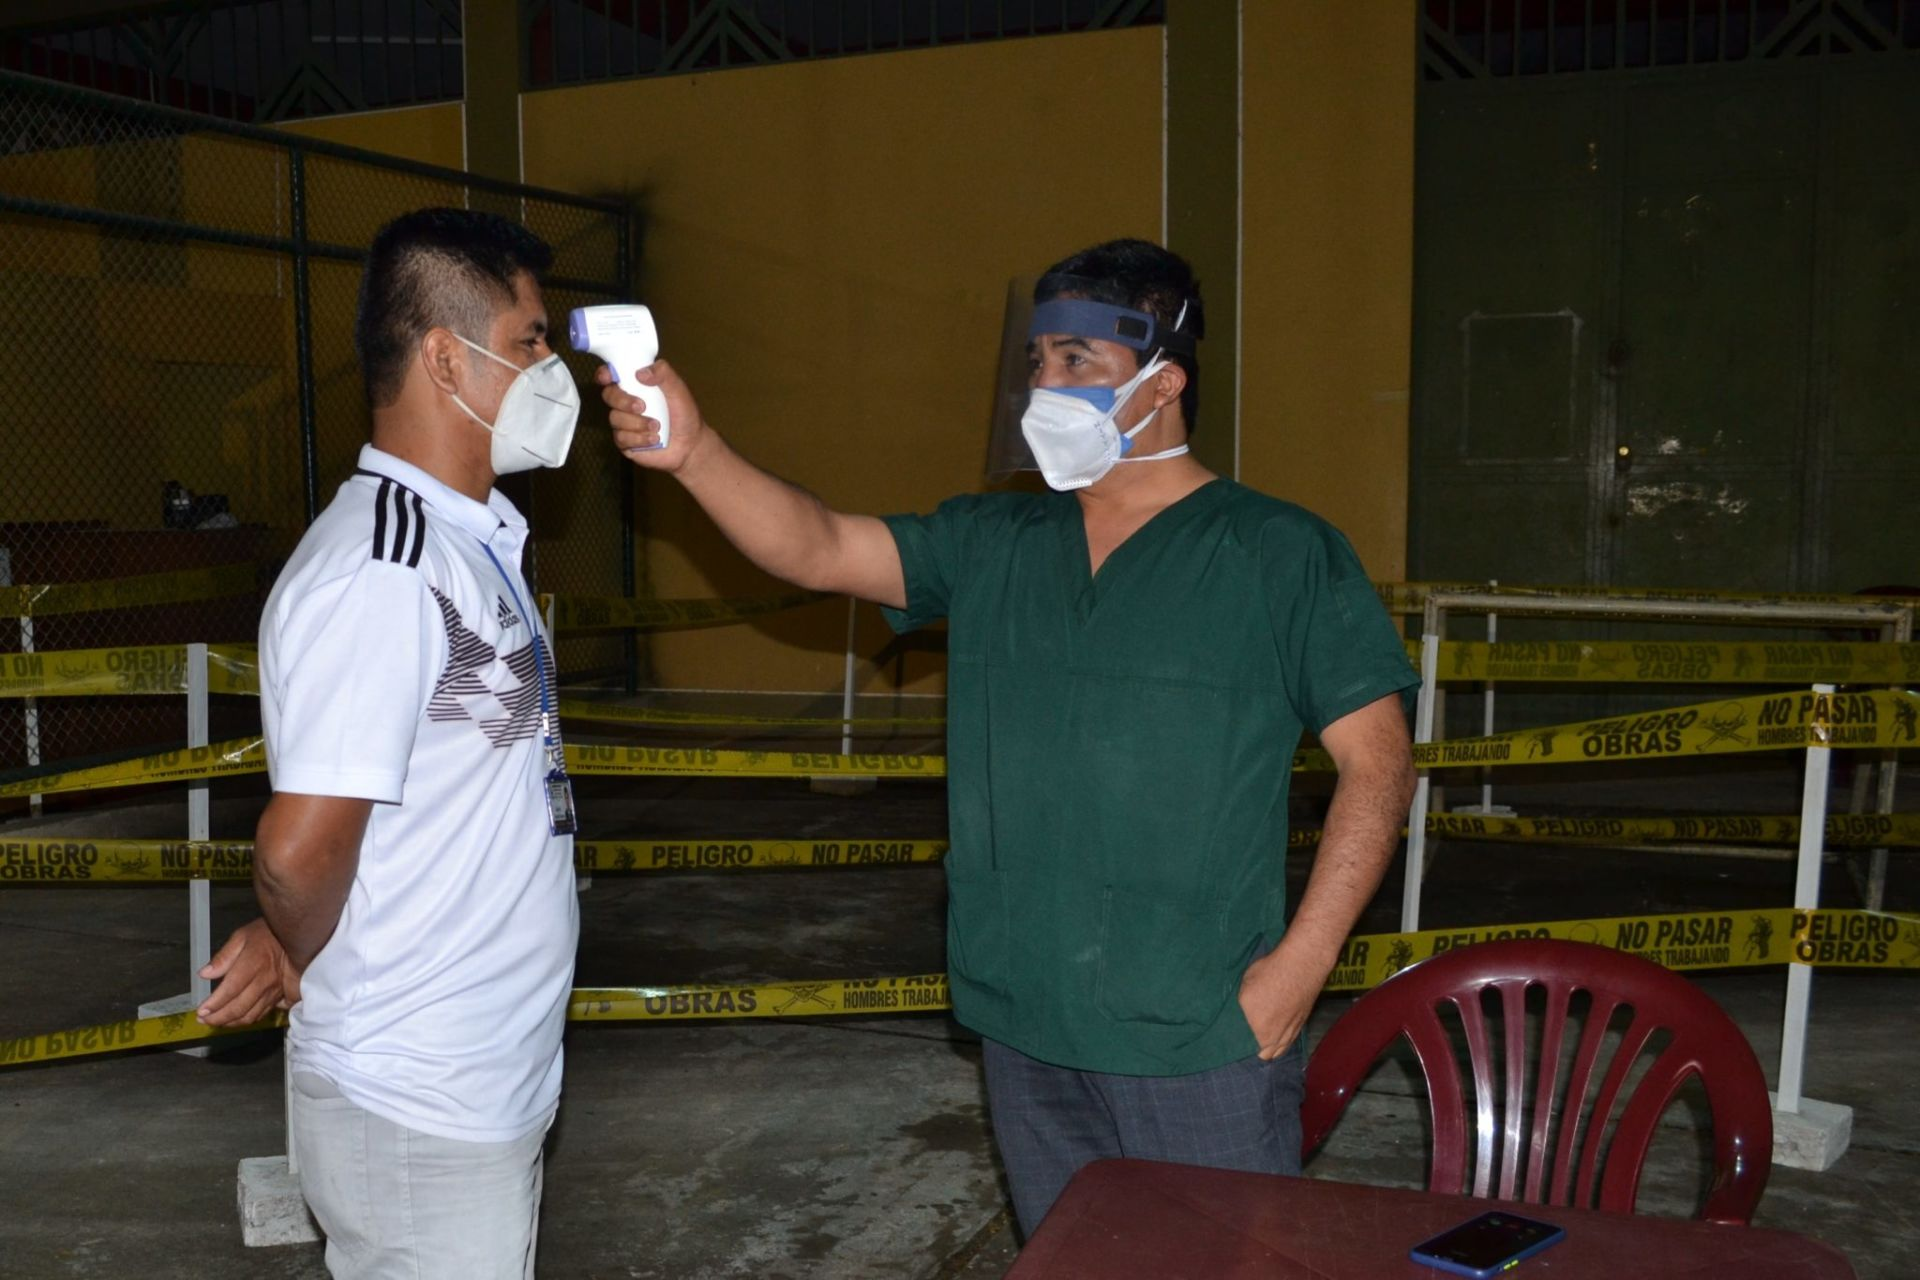 Temperature checks have become standard practice for farmers and employees in coffee growing regions of Peru to slow the spread of COVID-19.